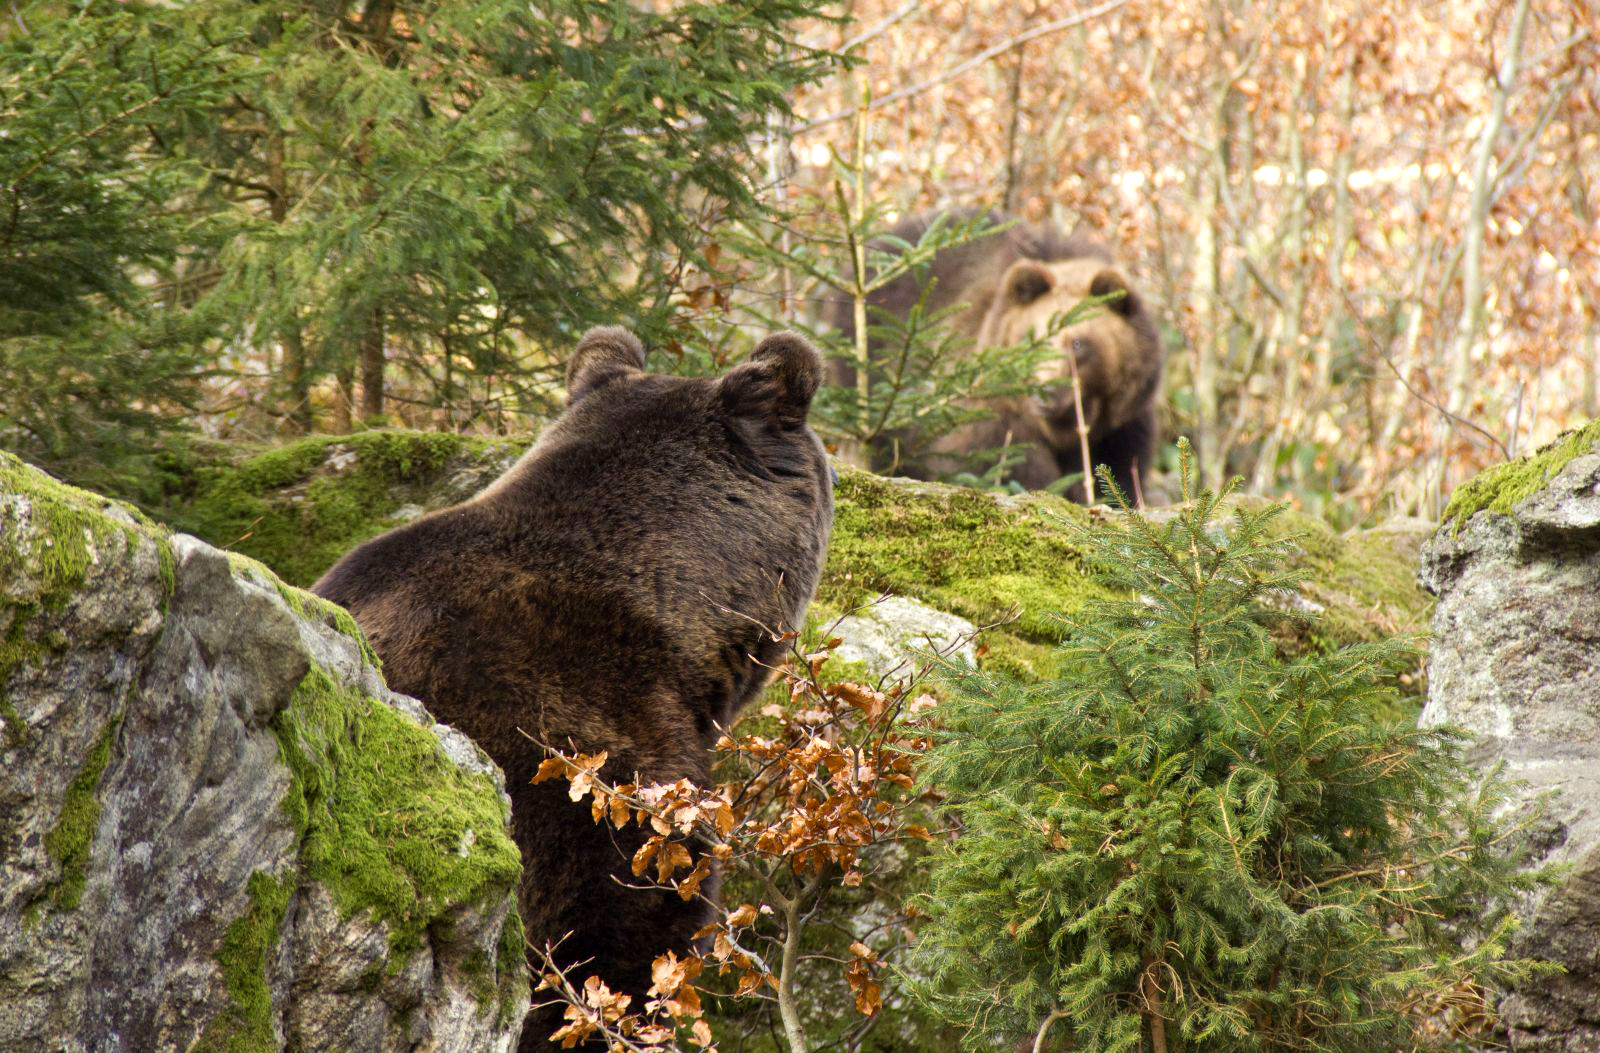 Bear Watching Tour Slovakia Without Hides Friendly Way To